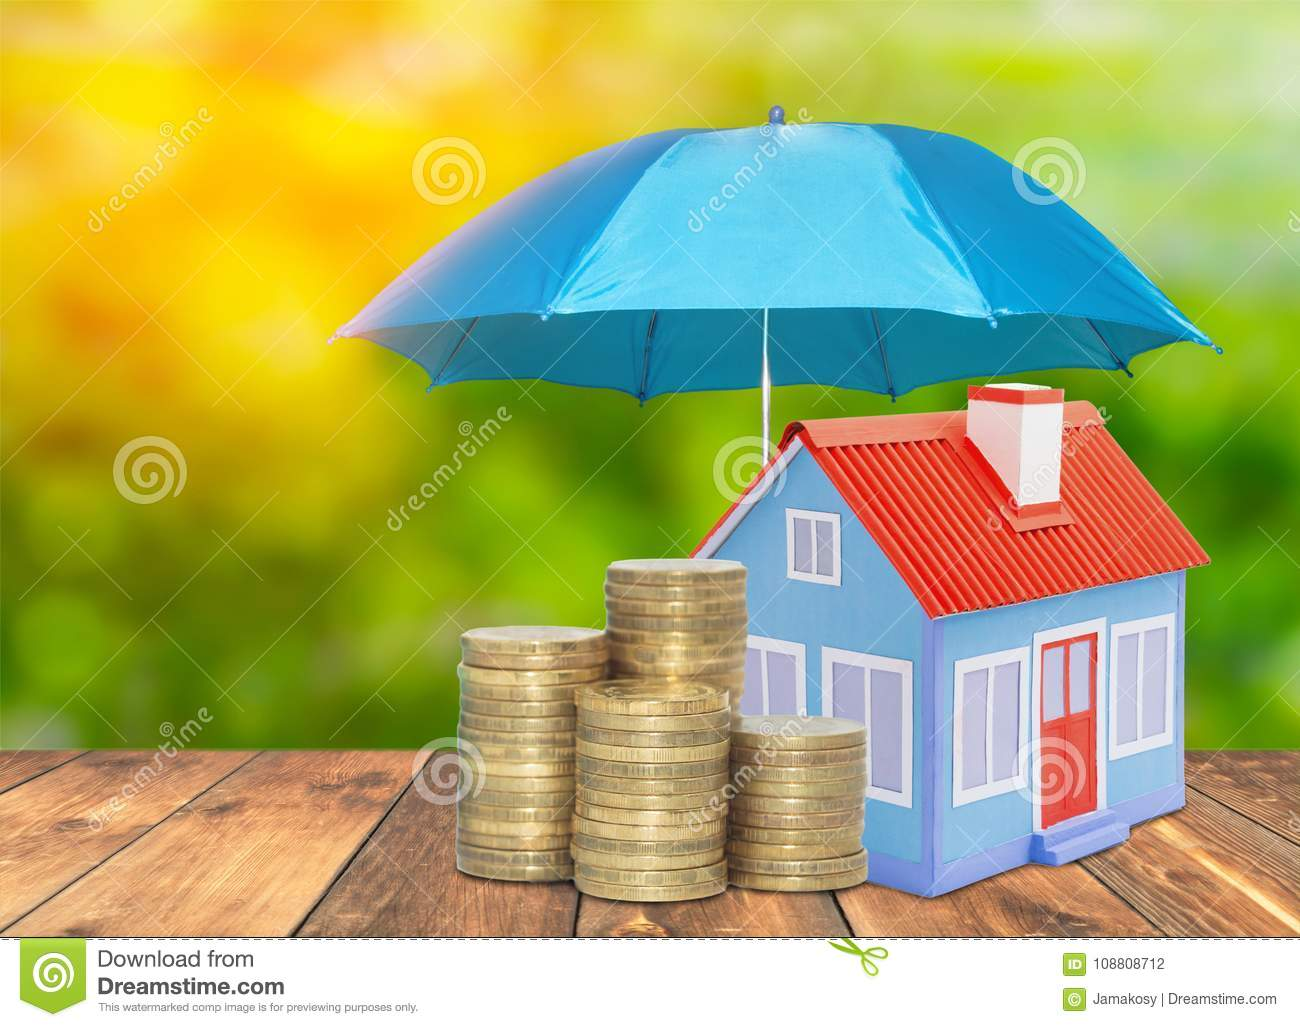 Umbrella protection House coins savings a business. Protection money insurance home concept